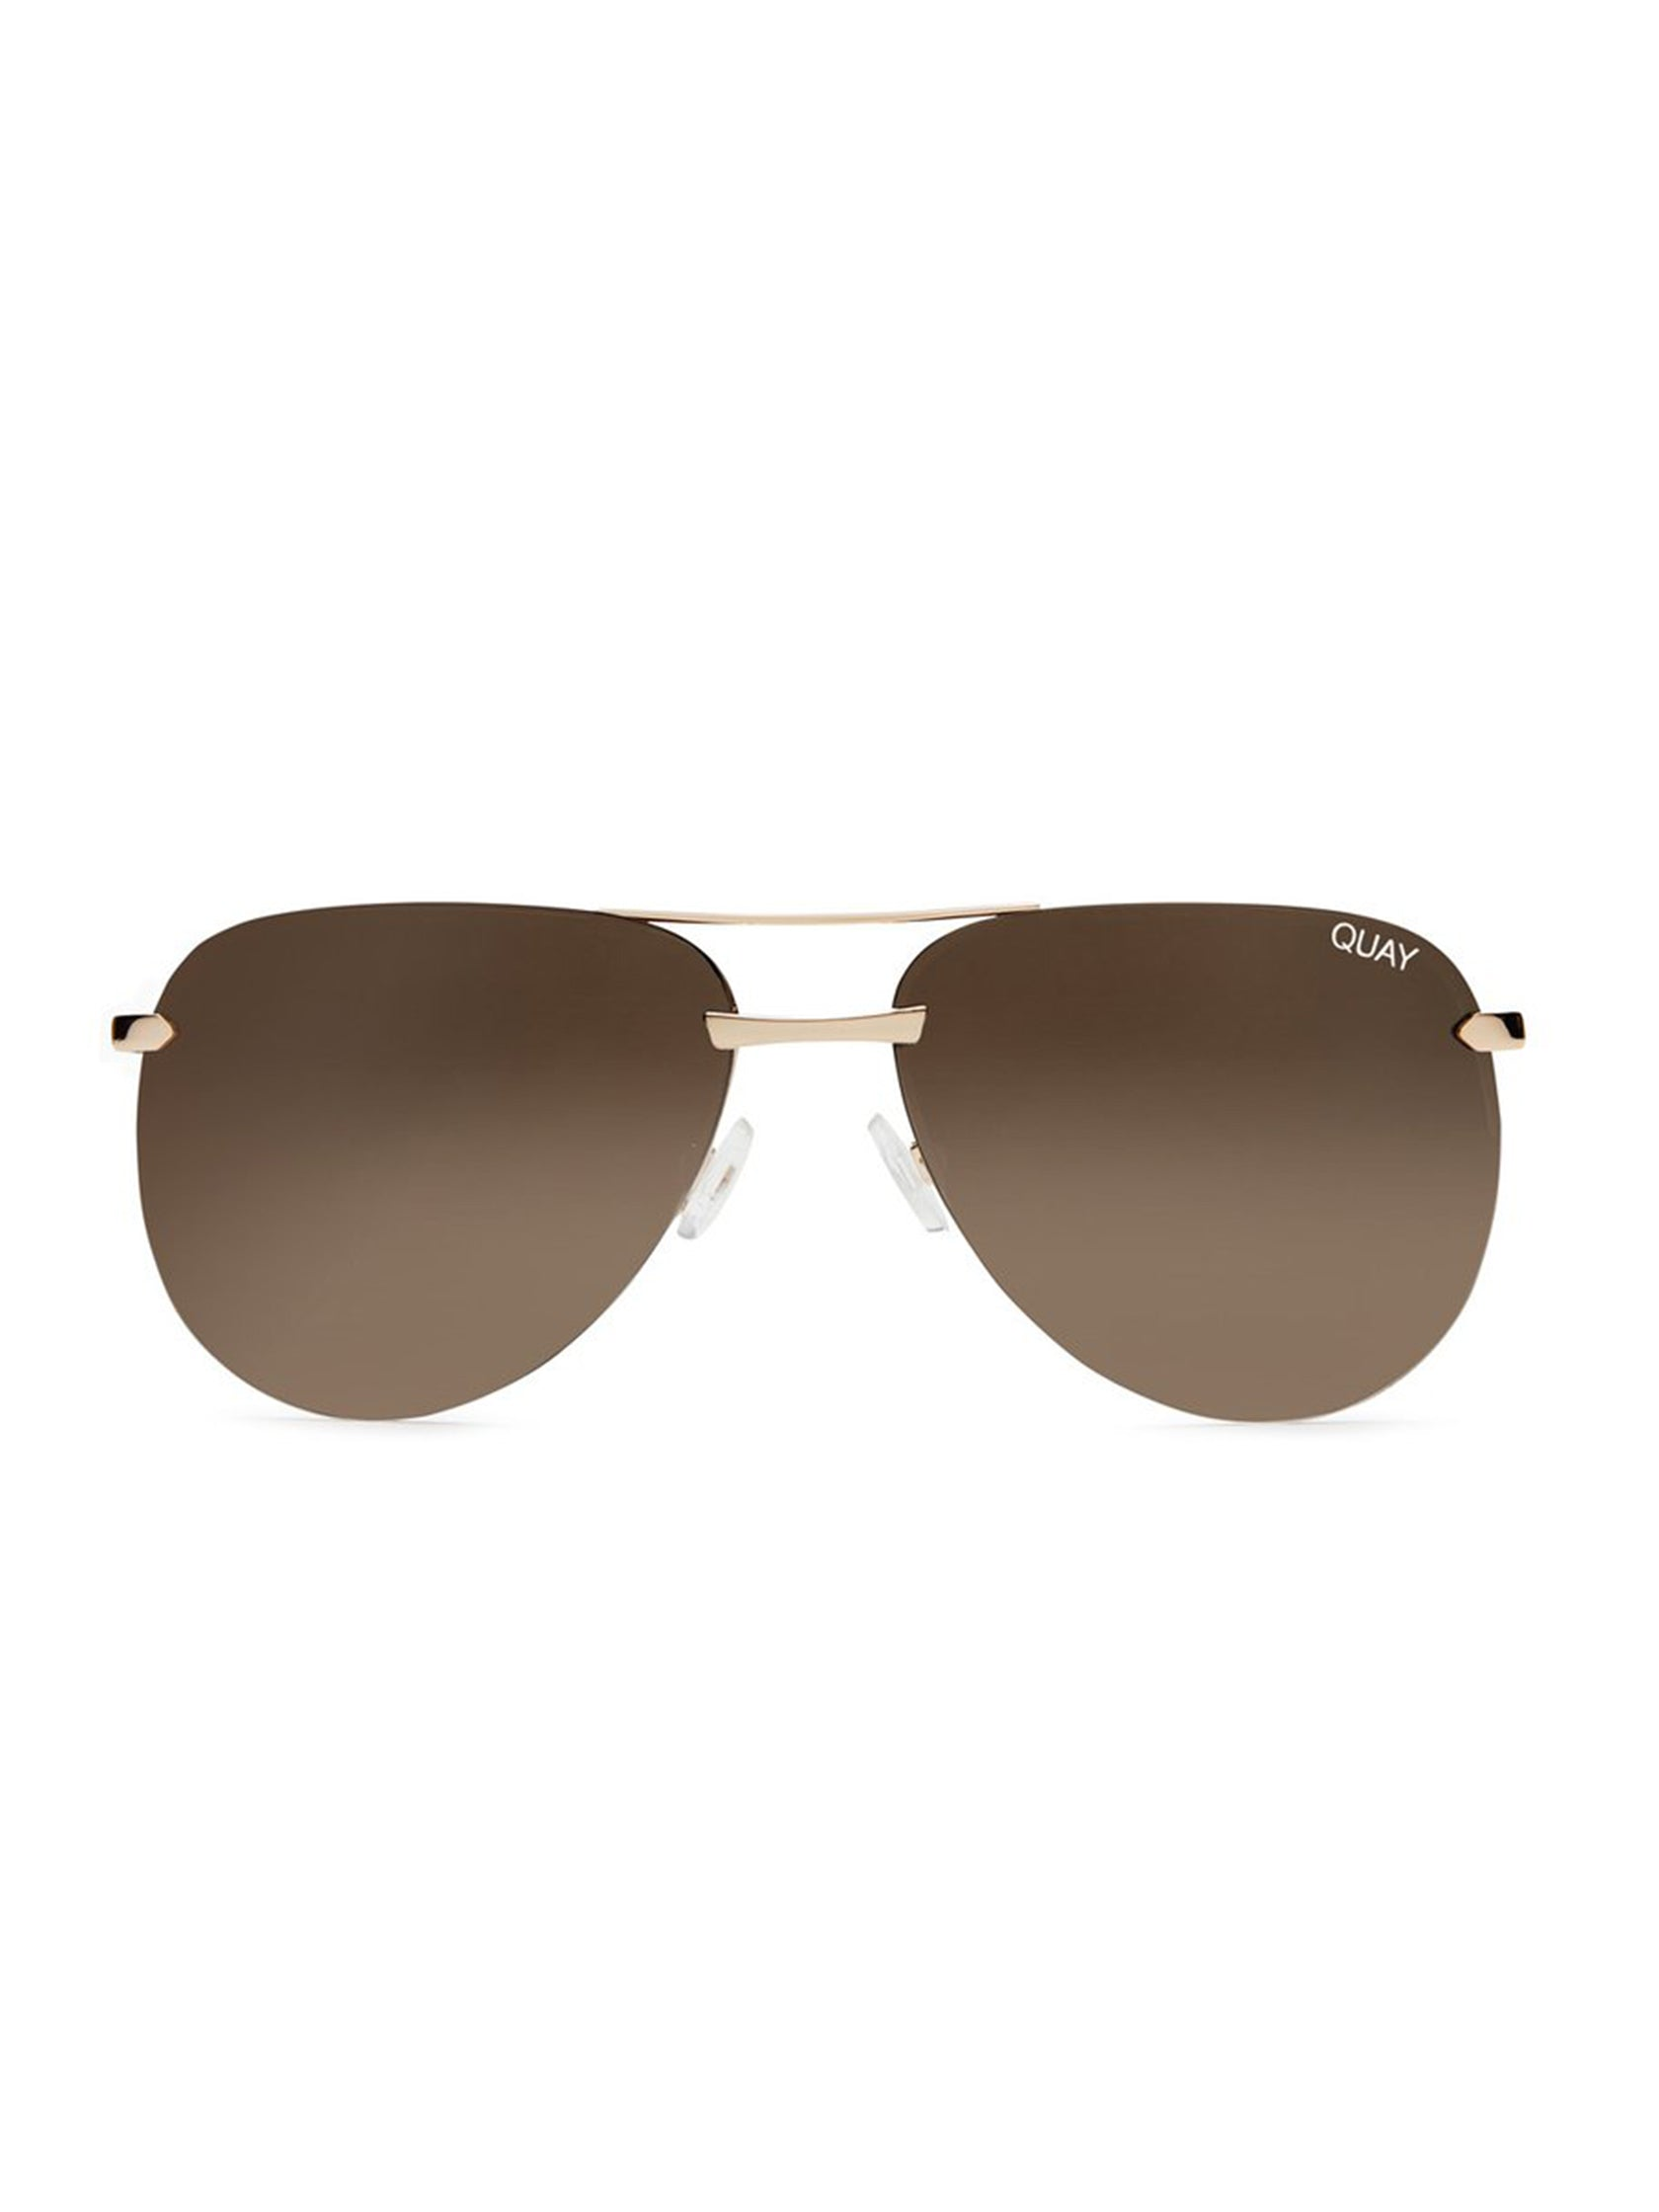 e1621fc19708 Girl outfit in a sunglasses rental from Quay Australia called The Playa  64mm Aviator Sunglasses